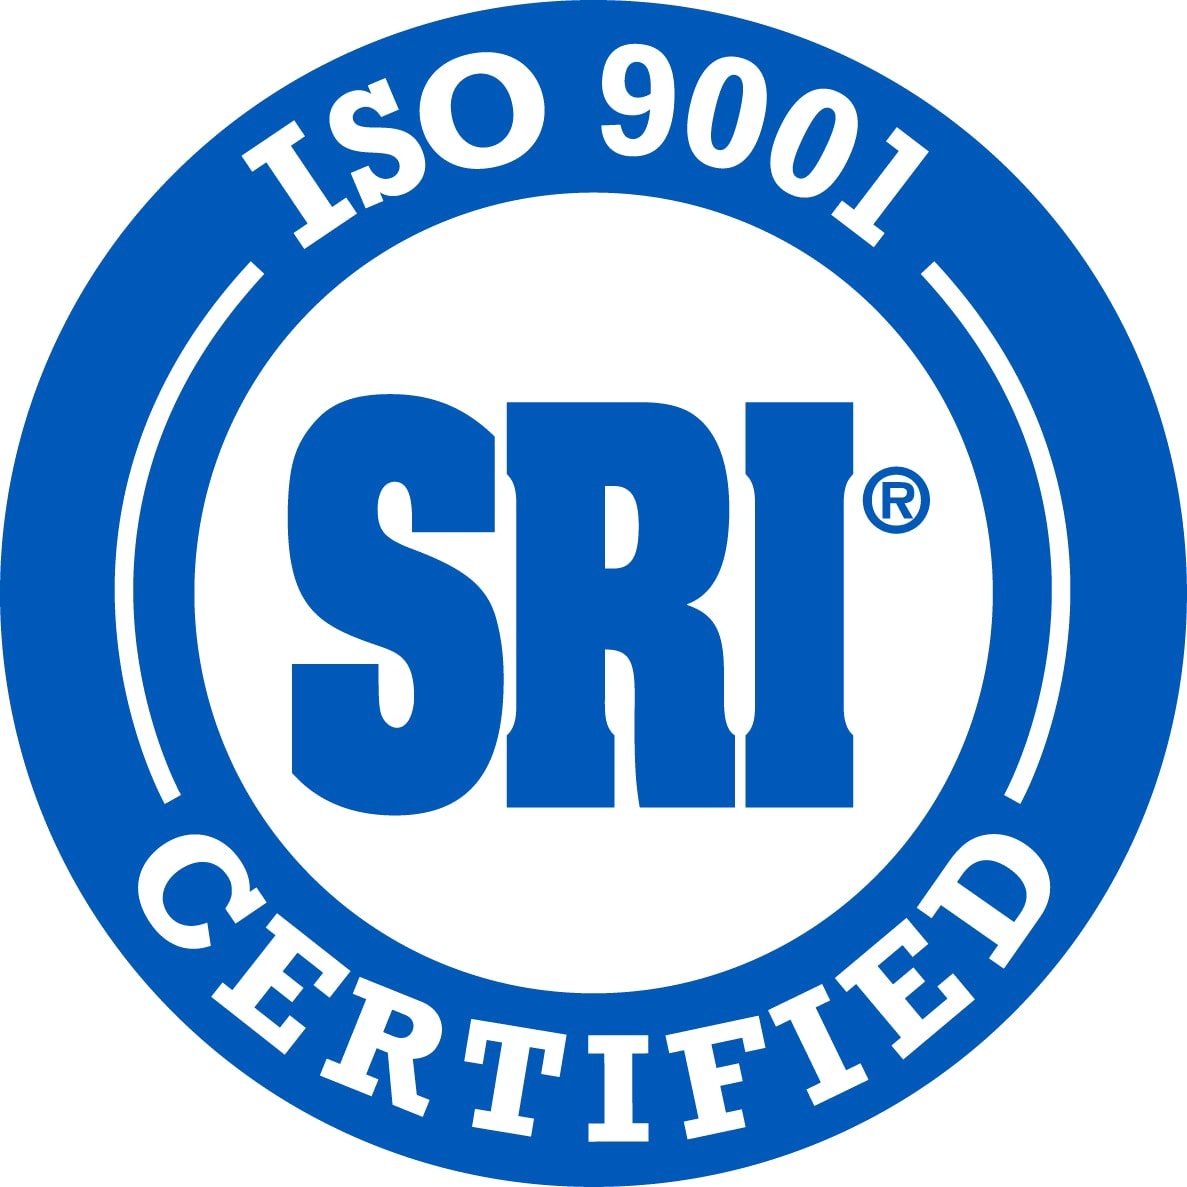 ISO 9001:2008 - Quality management systems - webstore.ansi.org